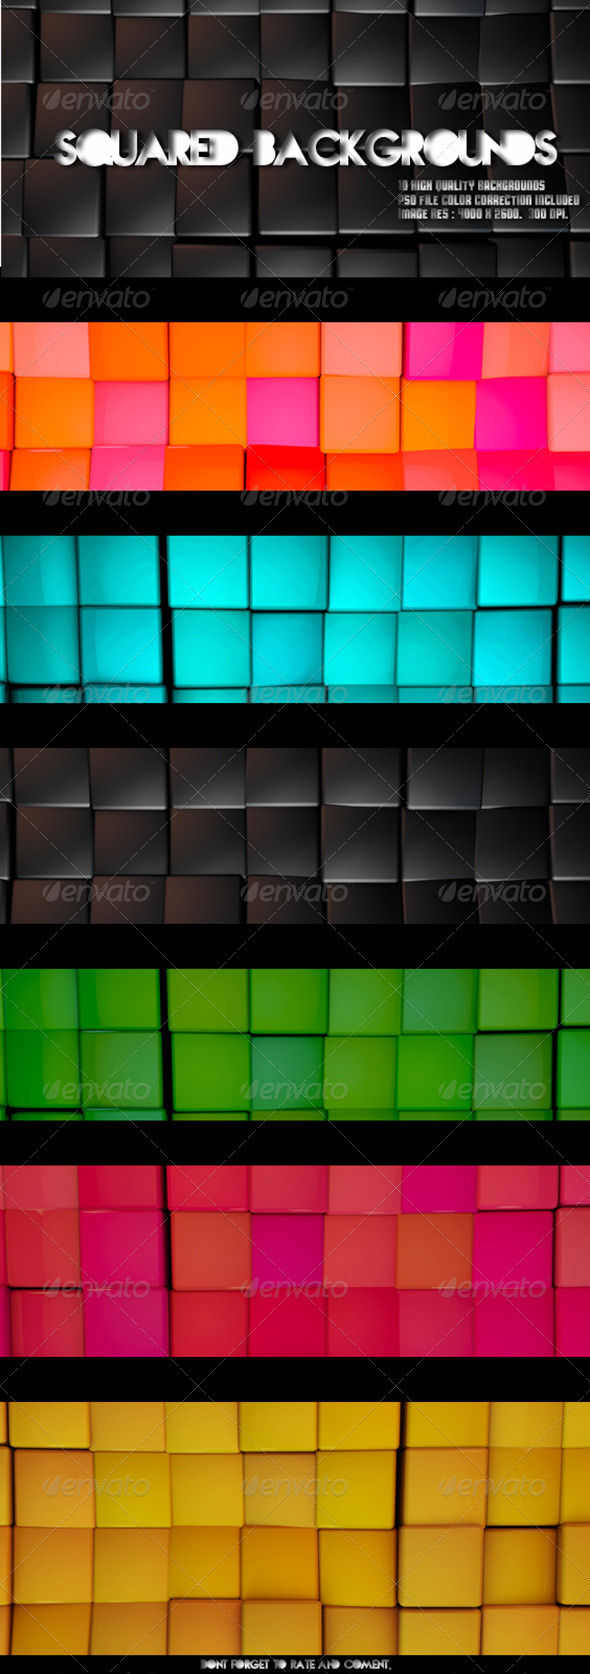 GraphicRiver Square Backgrounds 10 High Quality Backgrounds 2690320